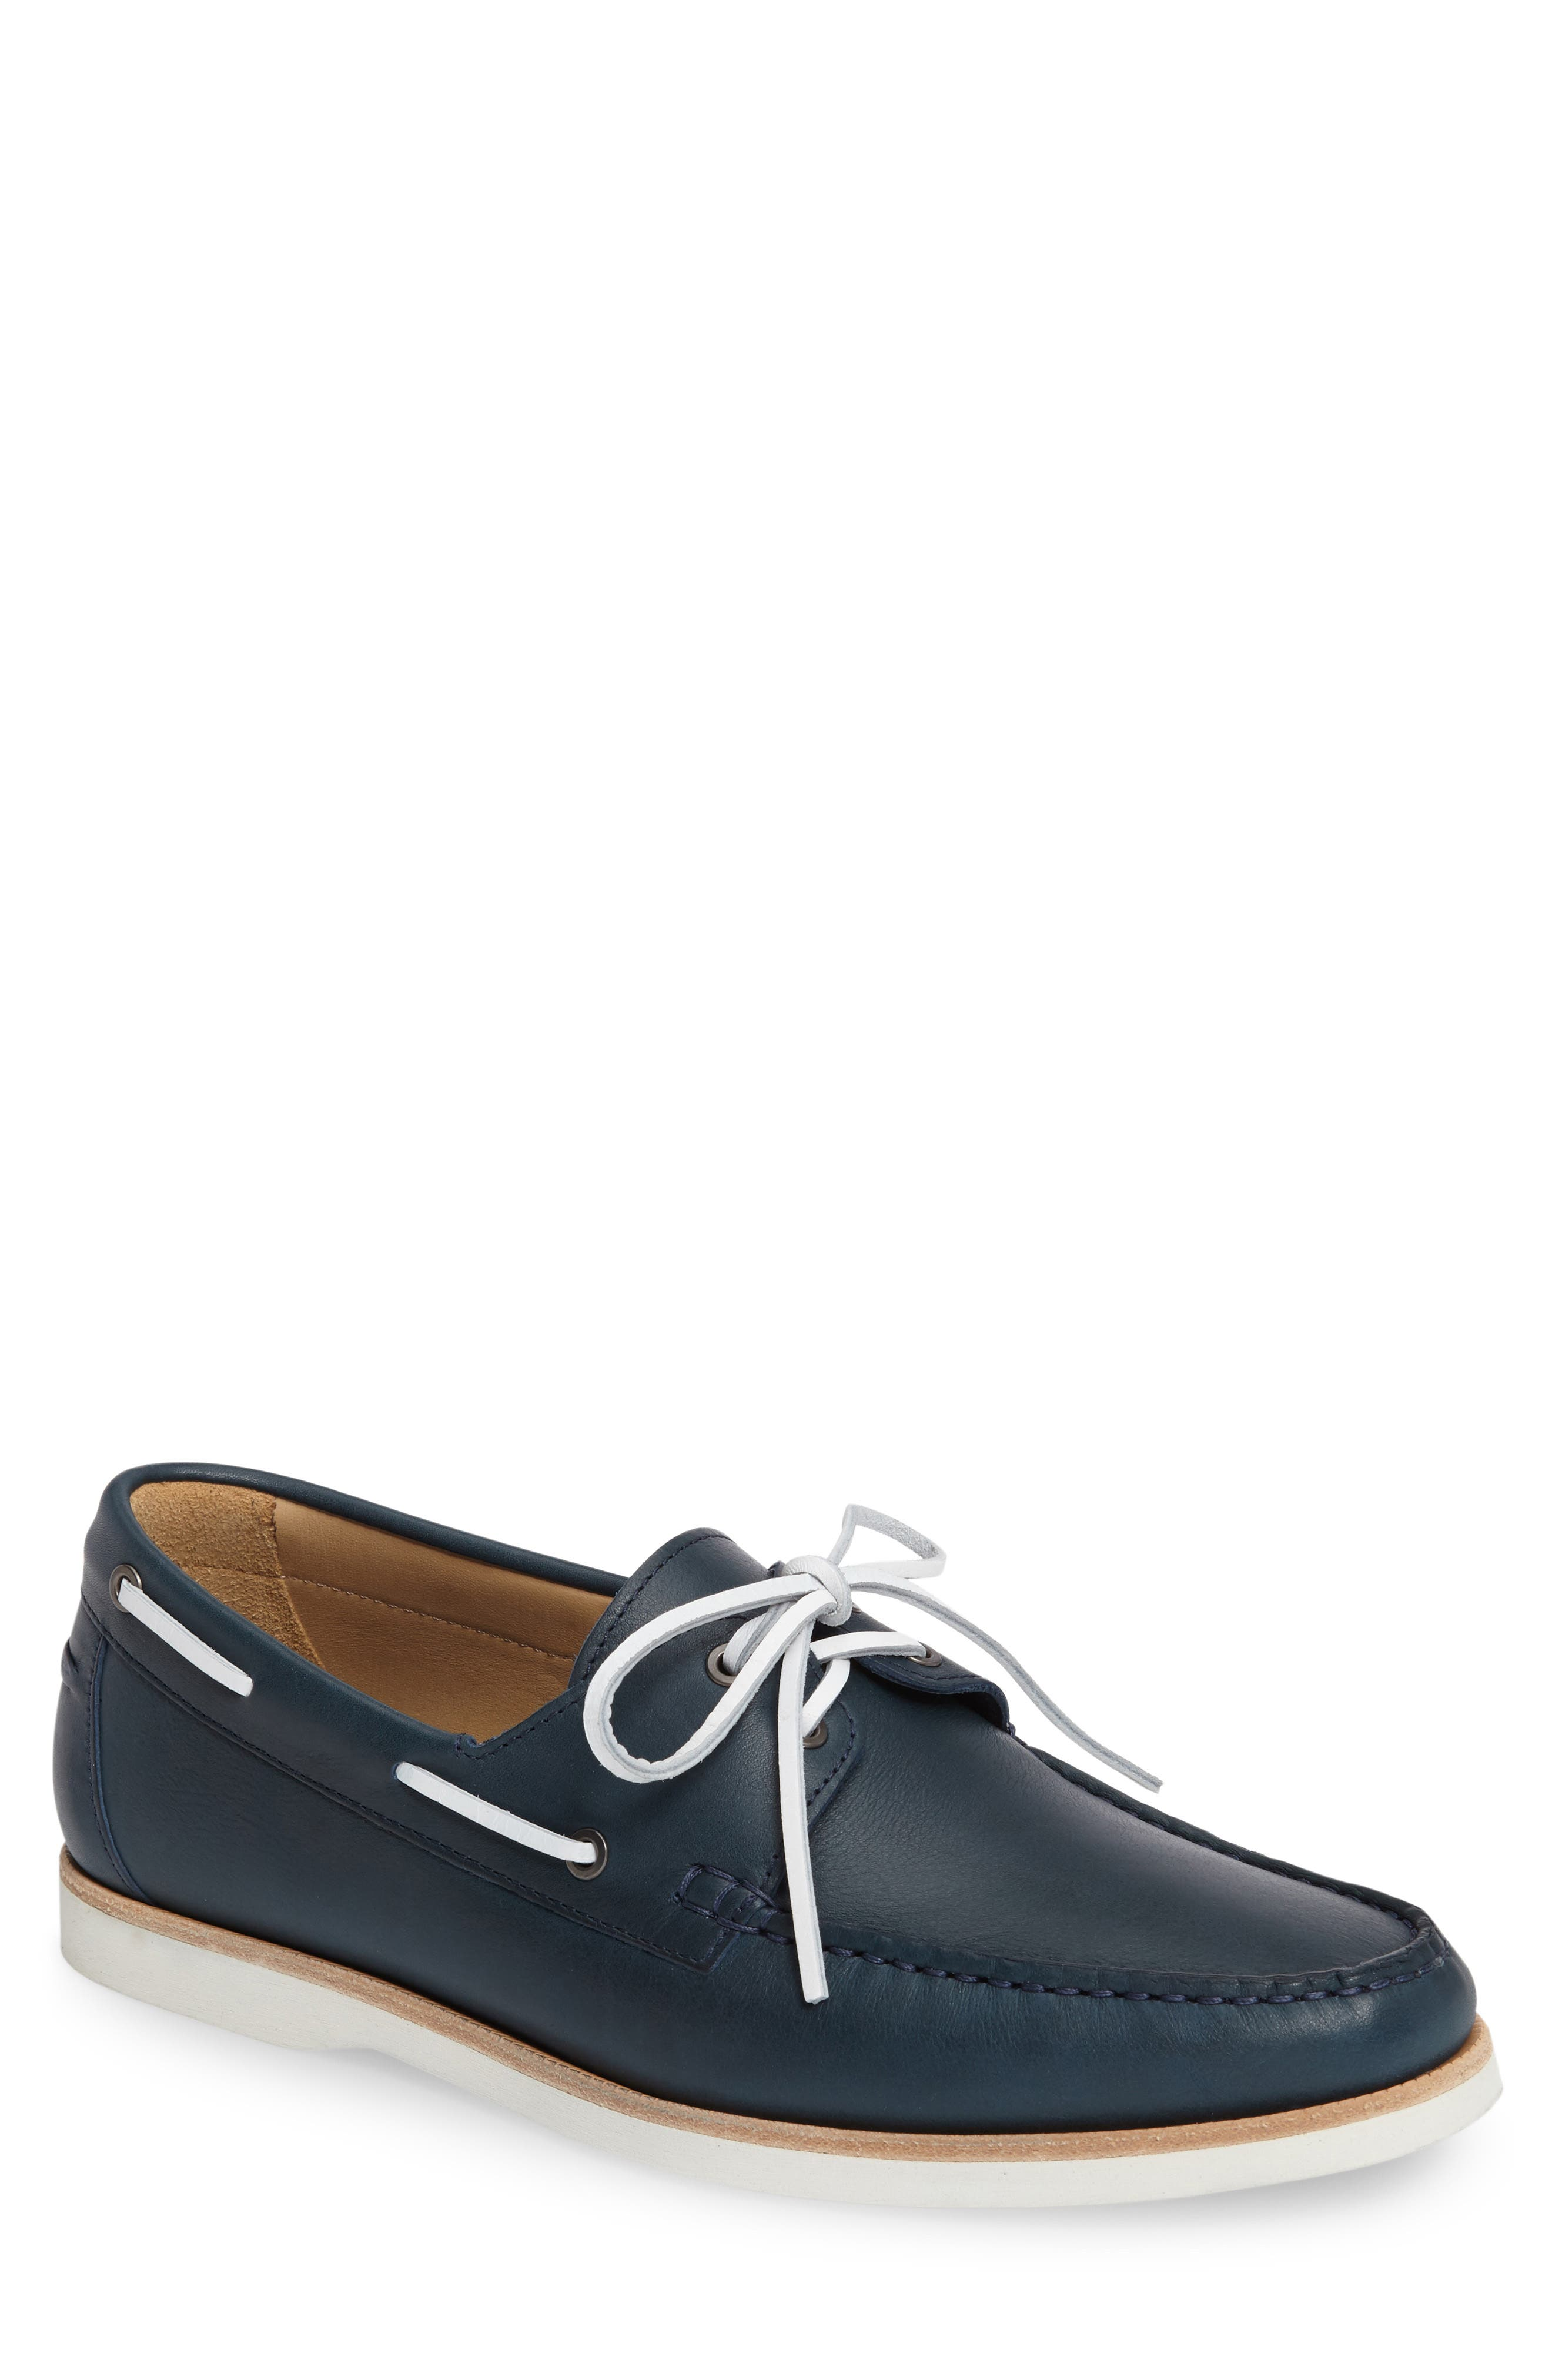 Cooper Boat Shoe,                             Main thumbnail 1, color,                             Navy Leather